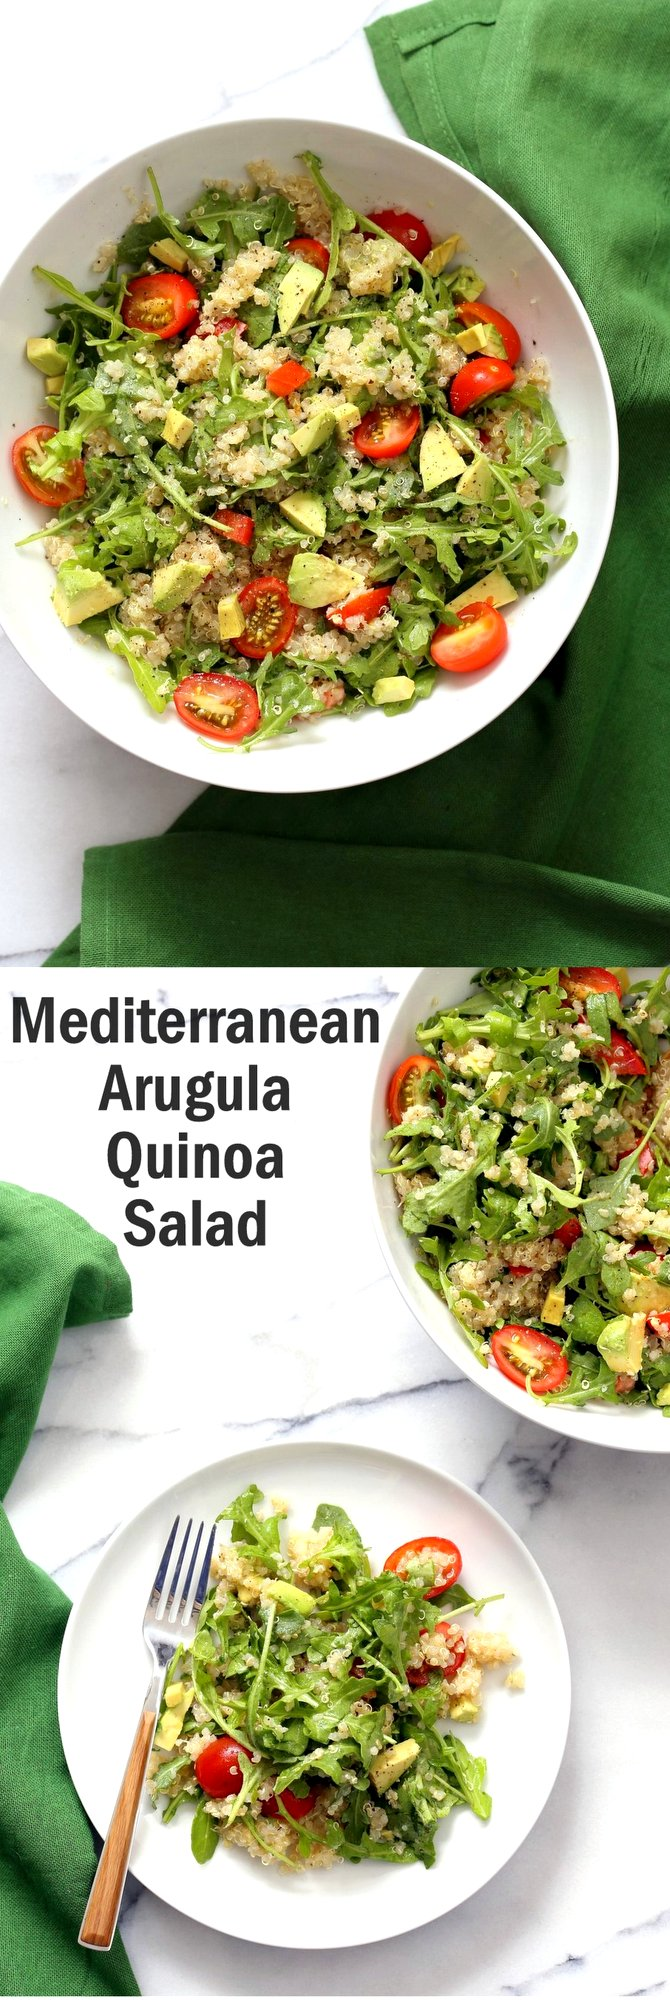 Vegan Mediterranean Quinoa Salad with Arugula, Avocado and Lemon Oregano Olive oil dressing. The Lemon Garlic Dressing brightens up this Summery Quinoa Salad. Perfect to make ahead and serve at Picnics. #Vegan #Glutenfree #Nutfree #Soyfree #Recipe #veganricha | VeganRicha.com